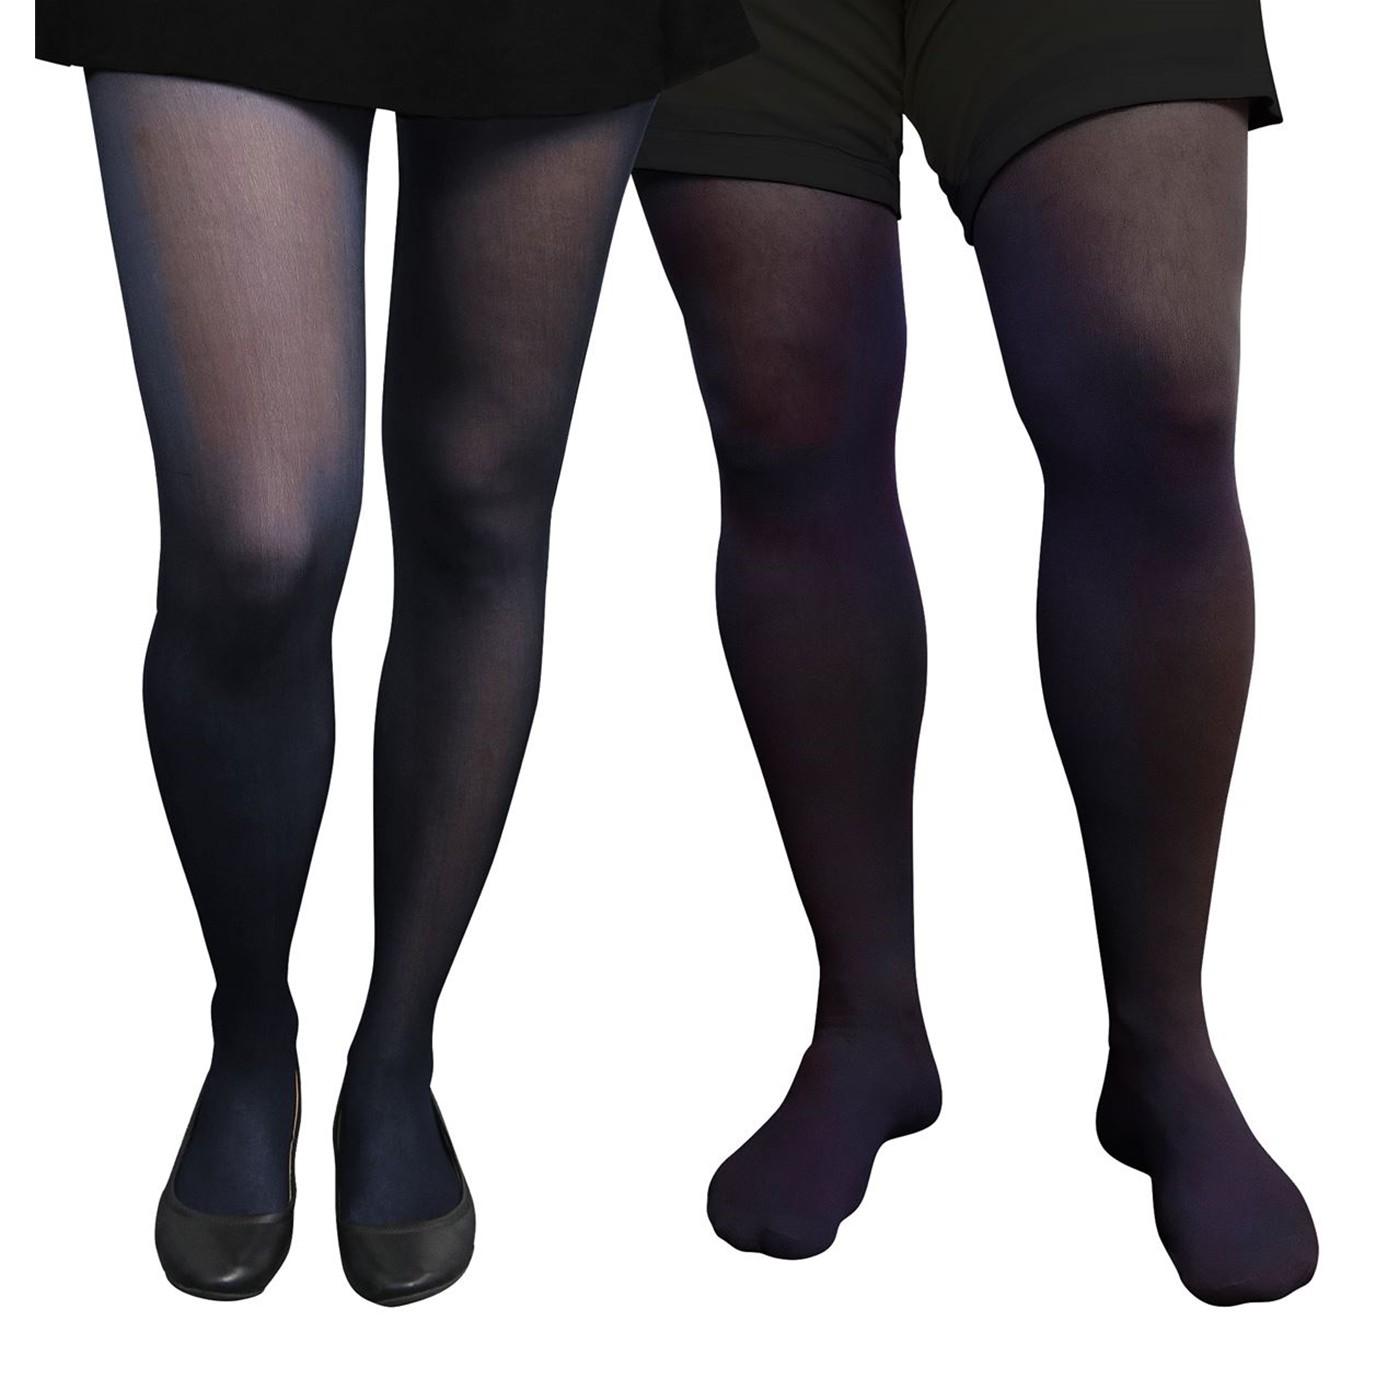 Adult Unisex Costume Navy Blue Tights